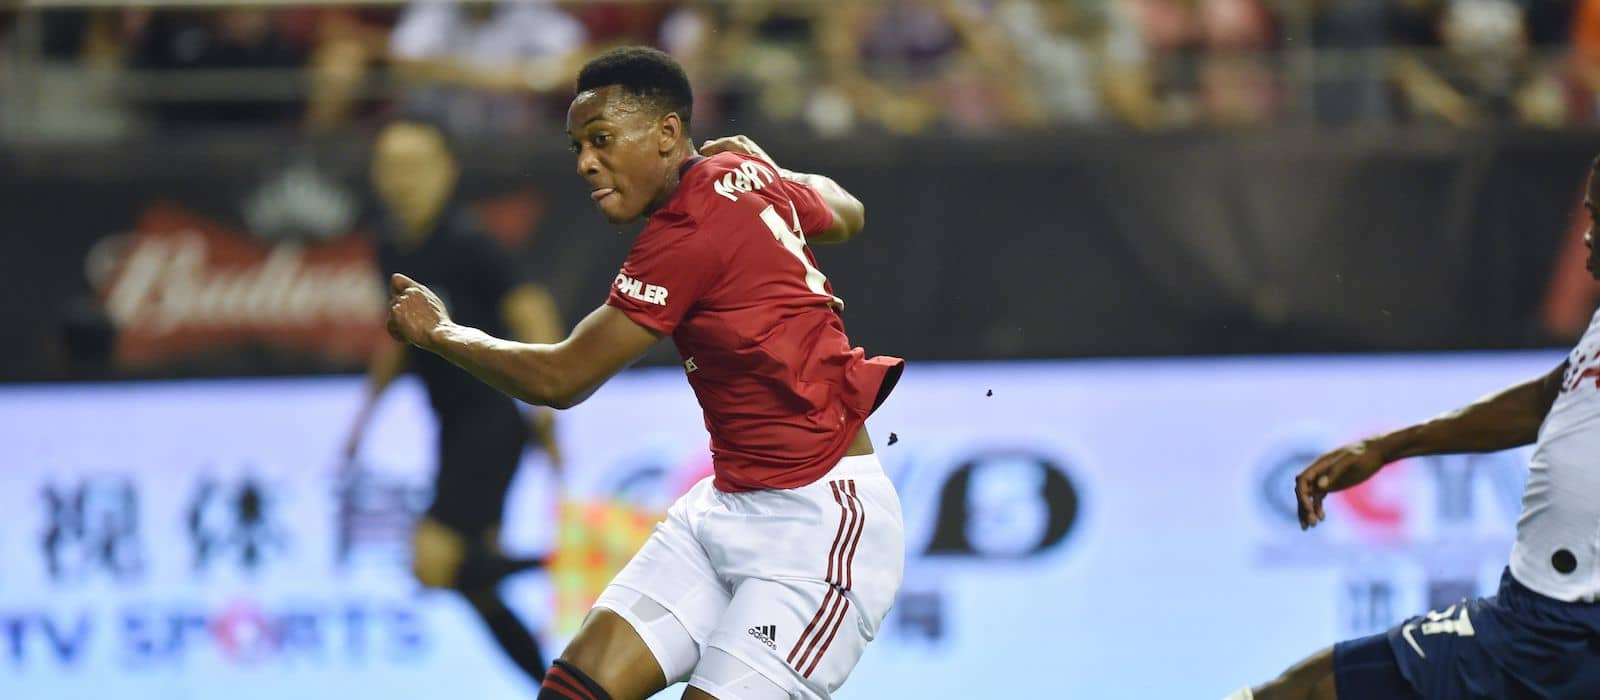 Anthony Martial reveals backing from Ole Gunnar Solskjaer in striker role